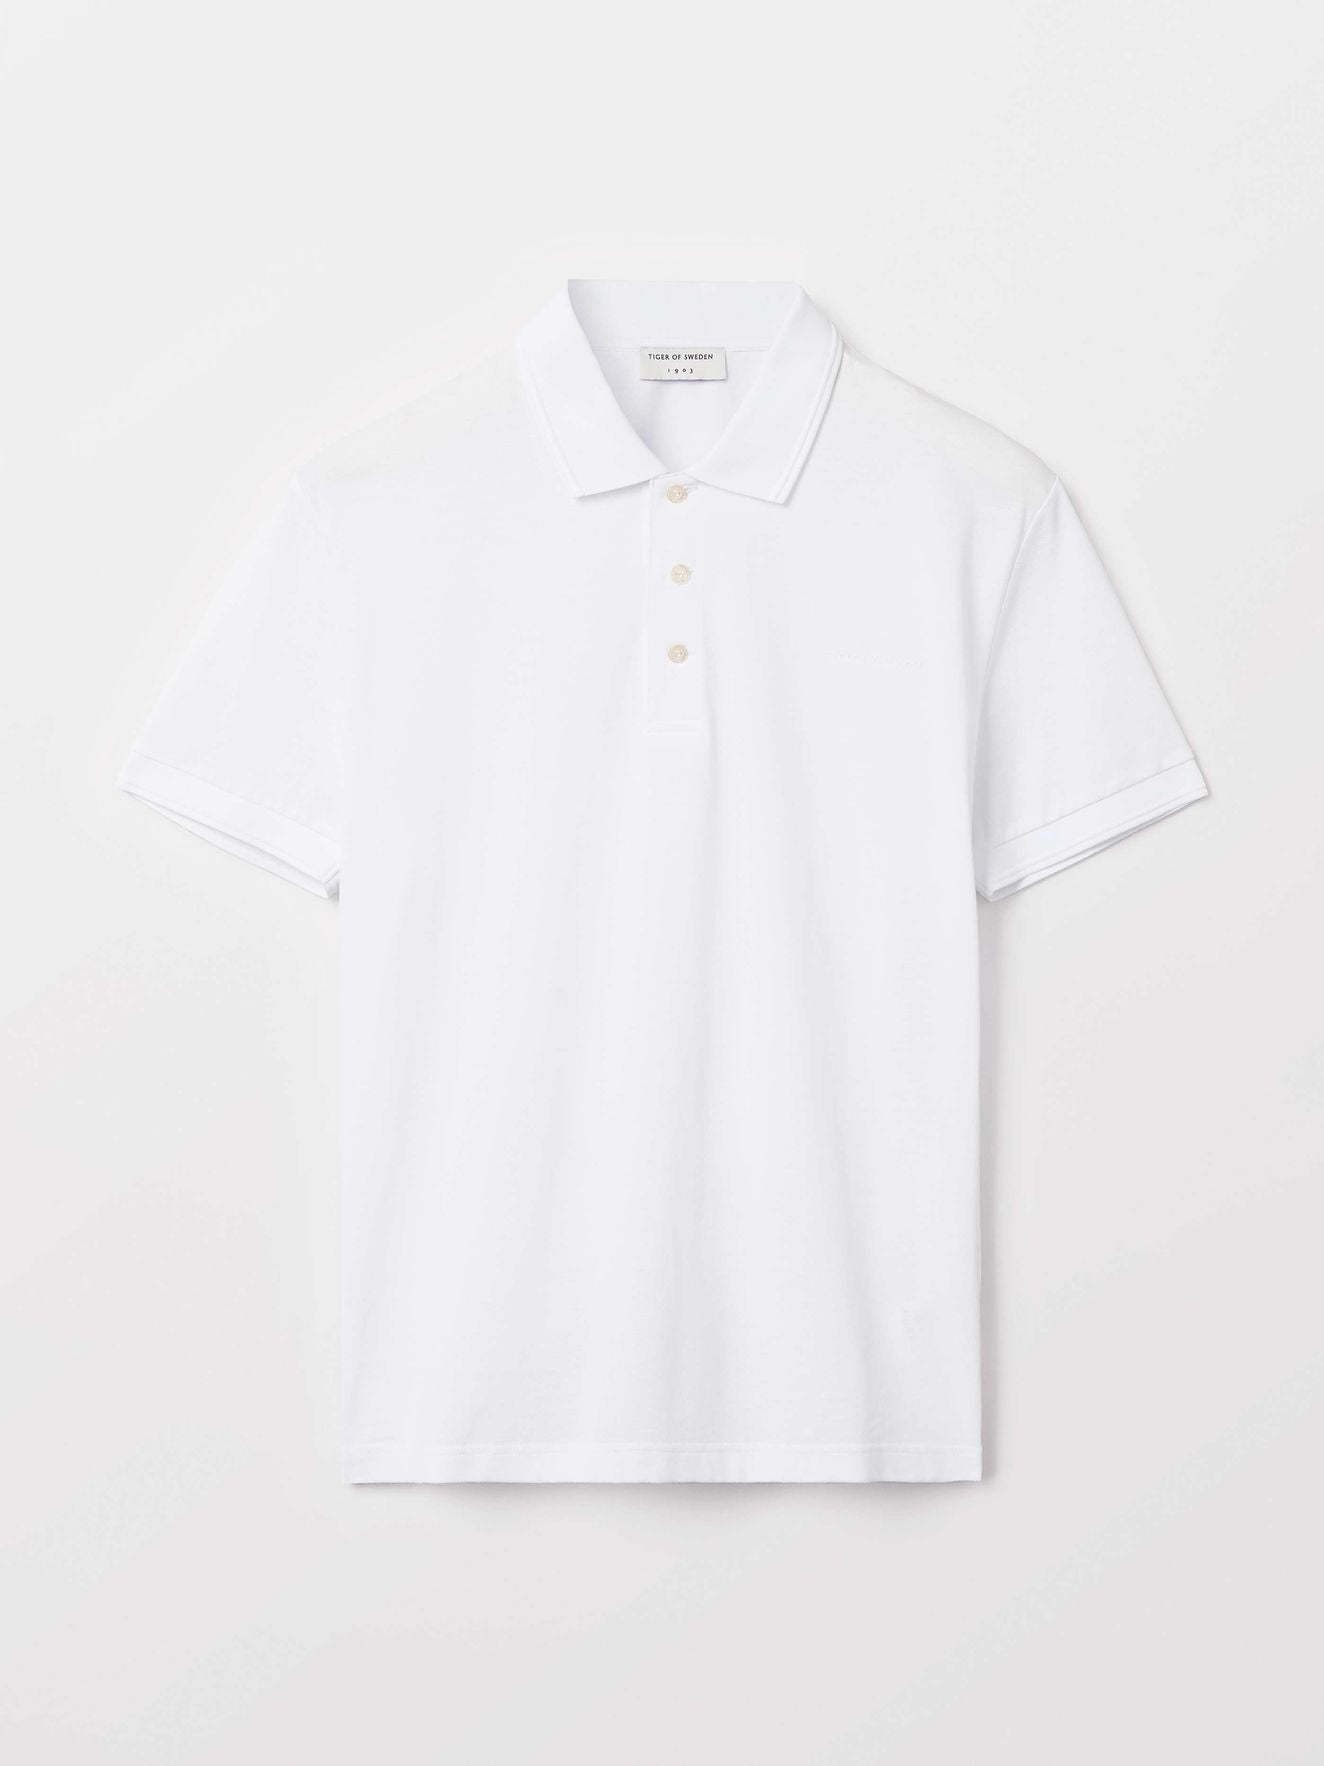 Menswear Cotton Polo Shirt White Color Premium Quality Summer 2019